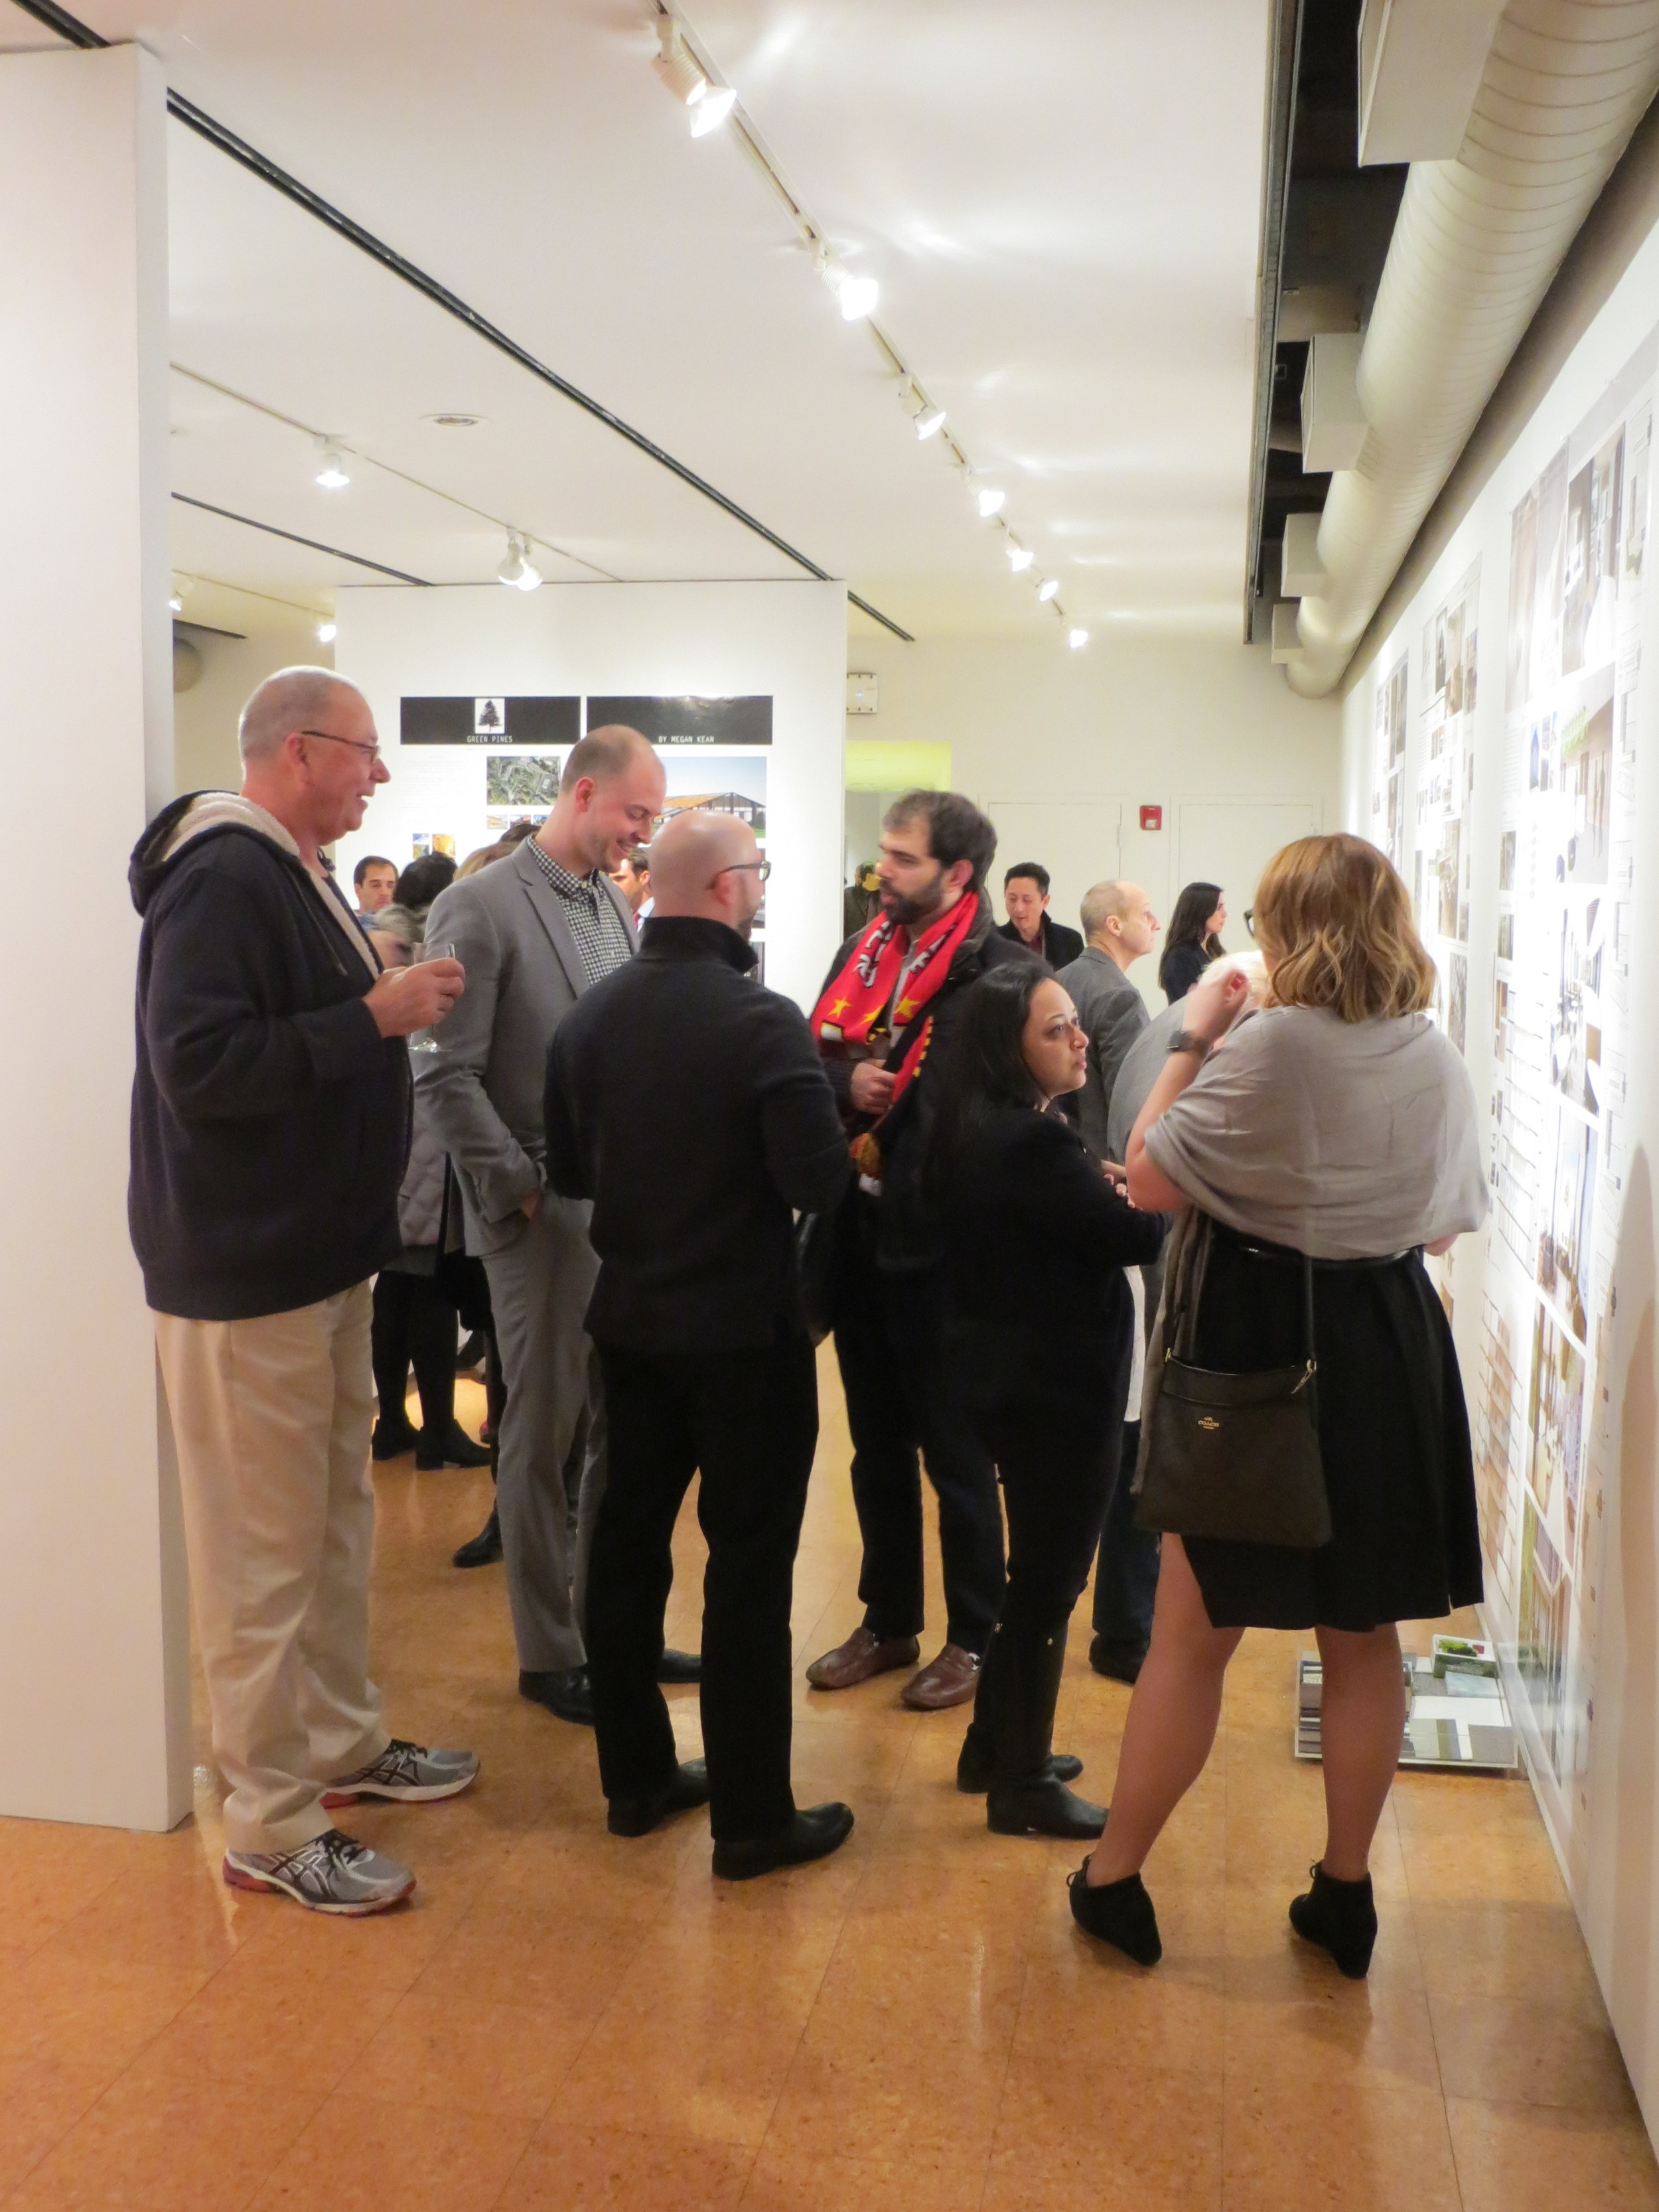 bfa-2017-winter-thesis-projects-exhibition_32712078266_o.jpg